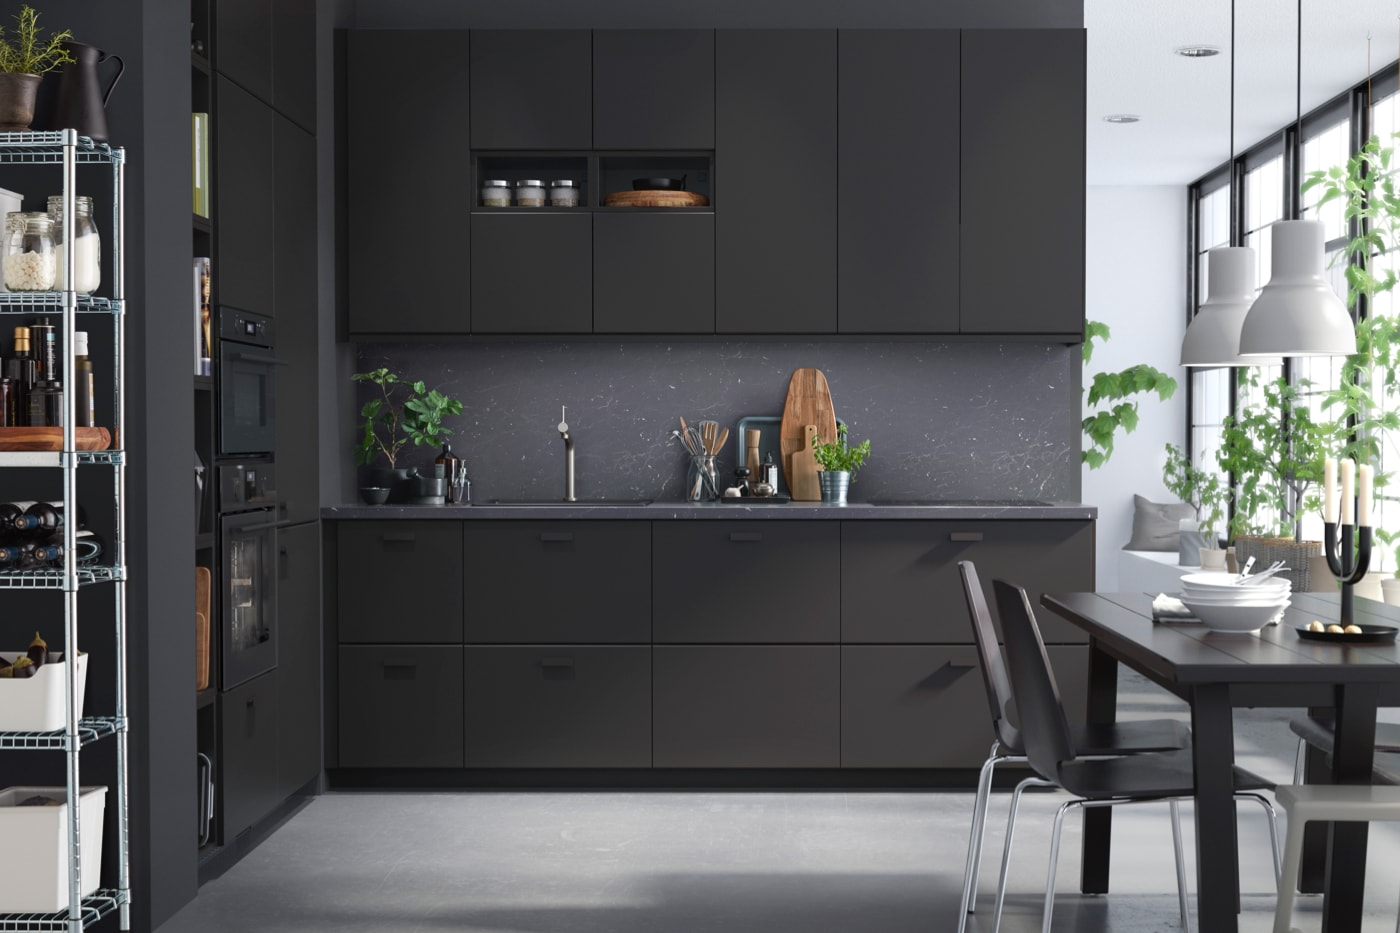 k che k chenm bel f r dein zuhause ikea. Black Bedroom Furniture Sets. Home Design Ideas